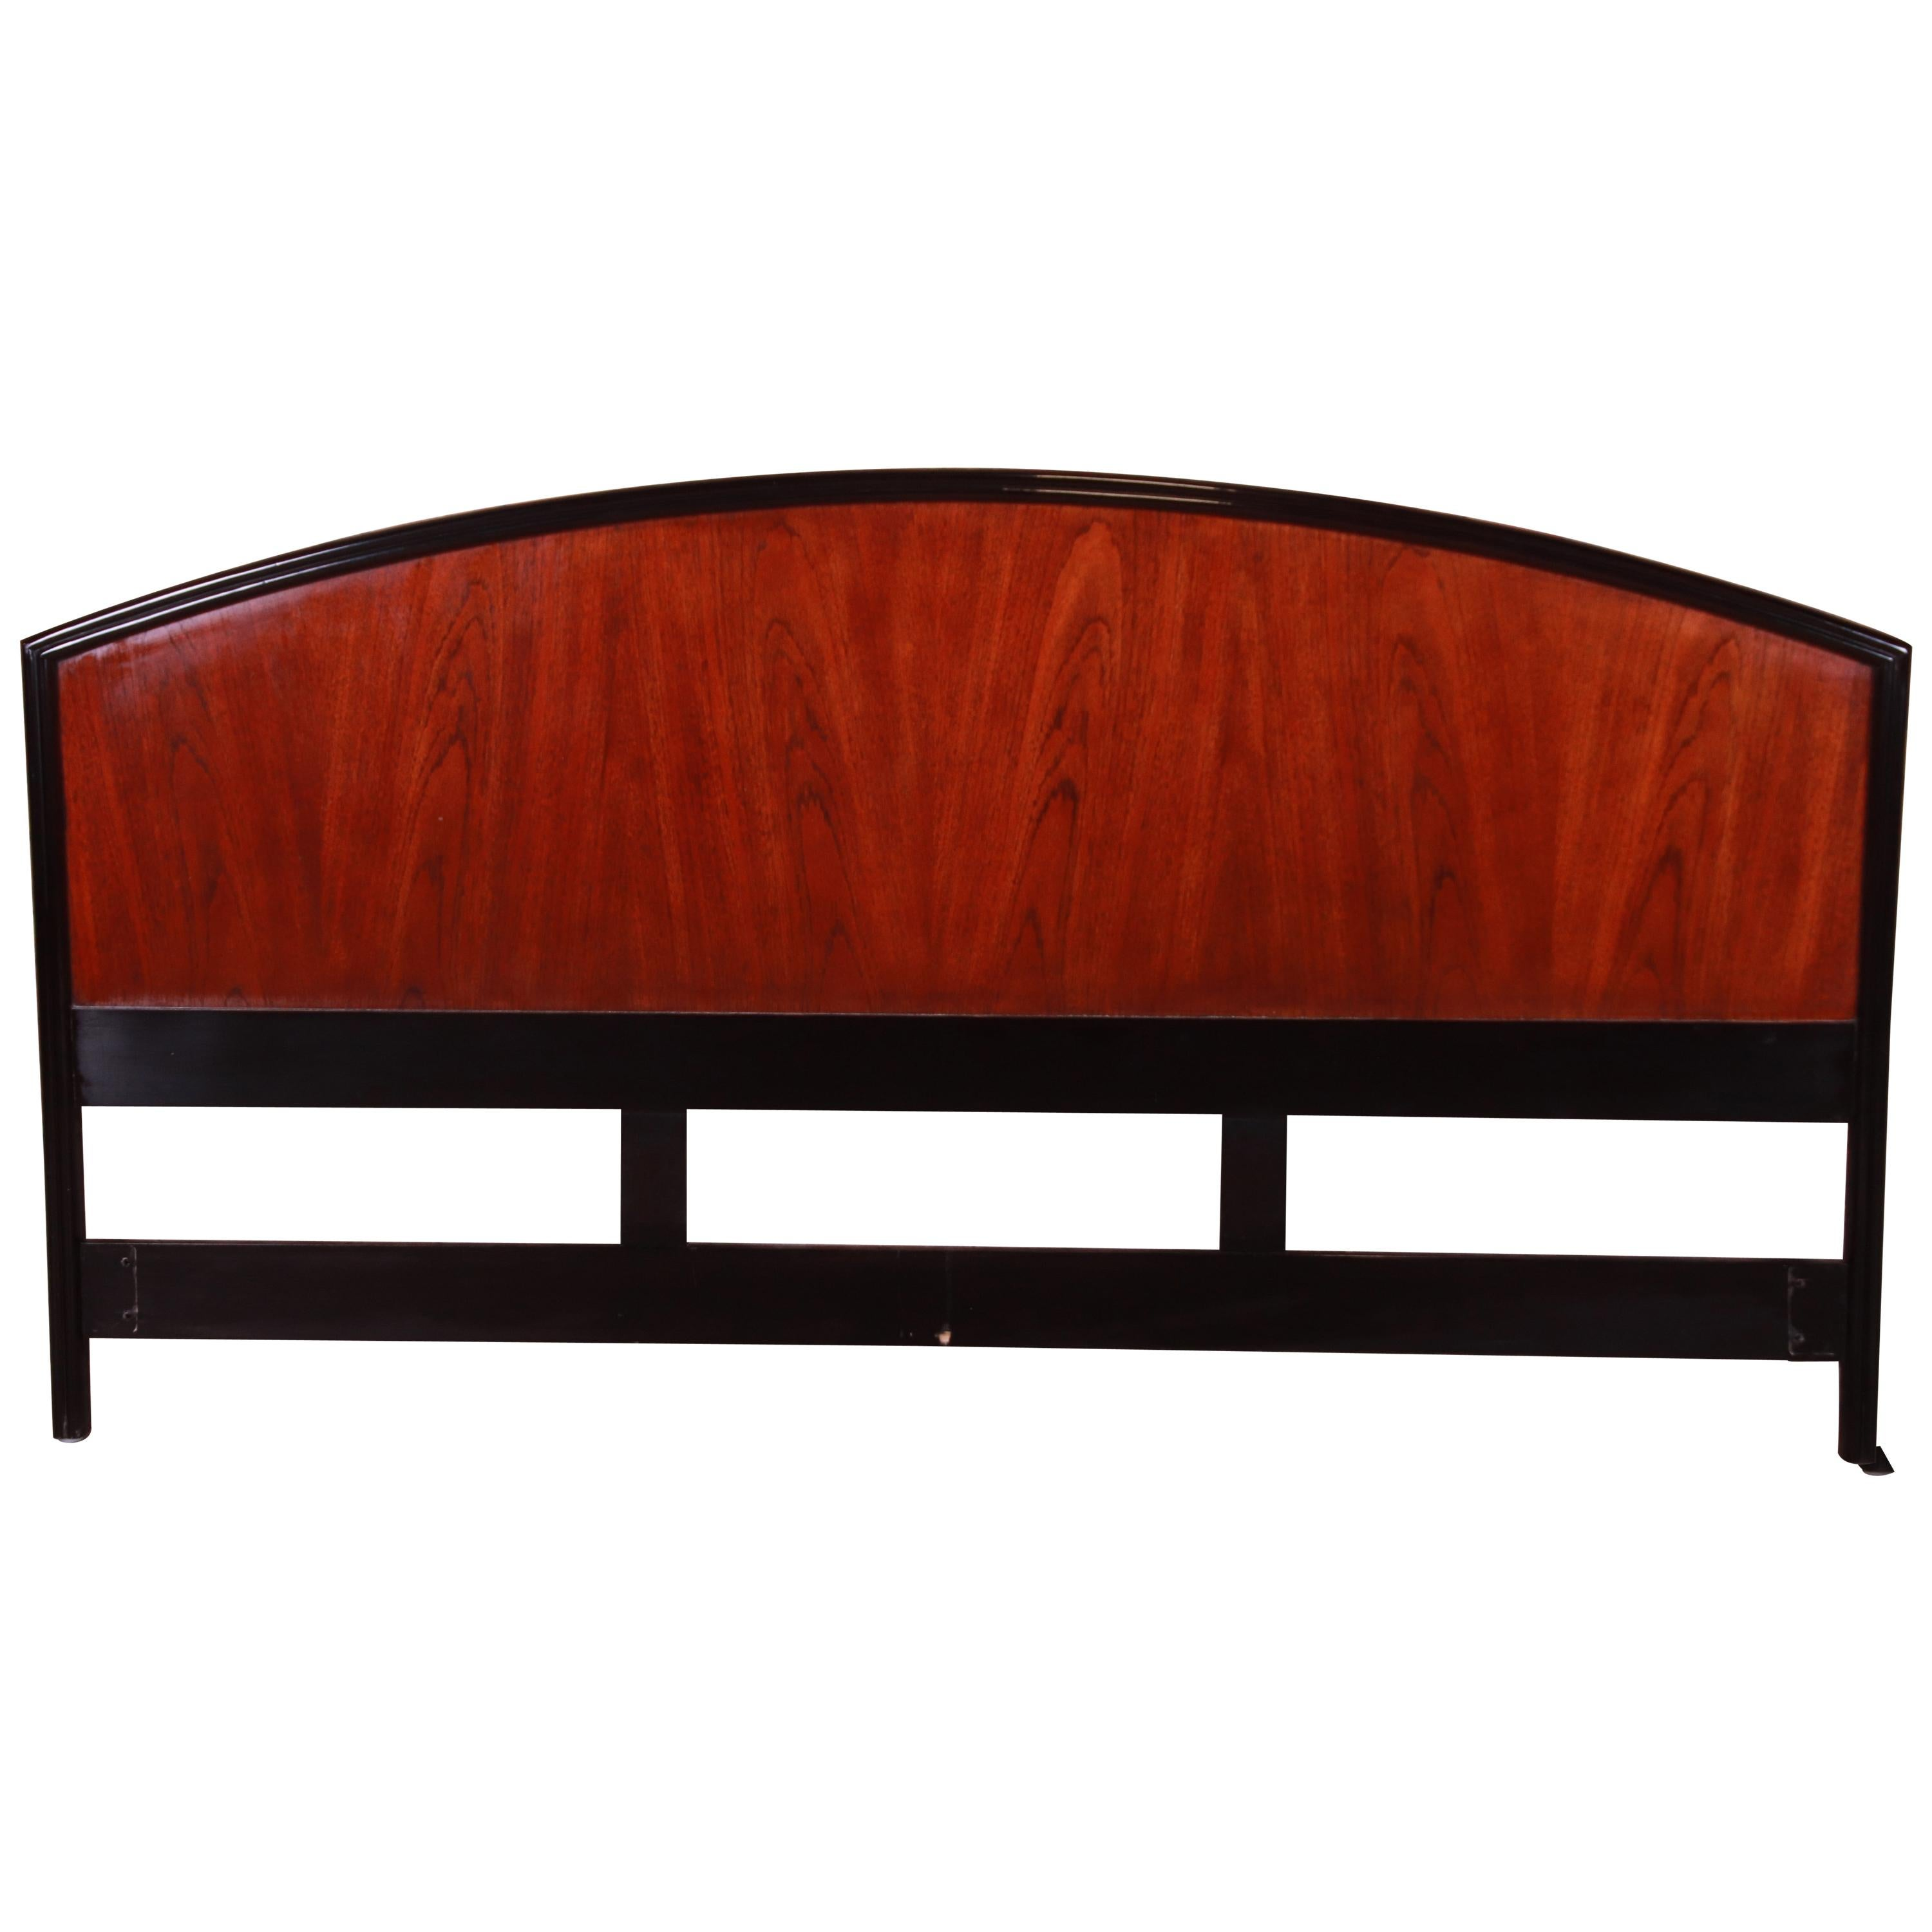 Century Furniture Modern Mahogany and Black Lacquer King Size Headboard